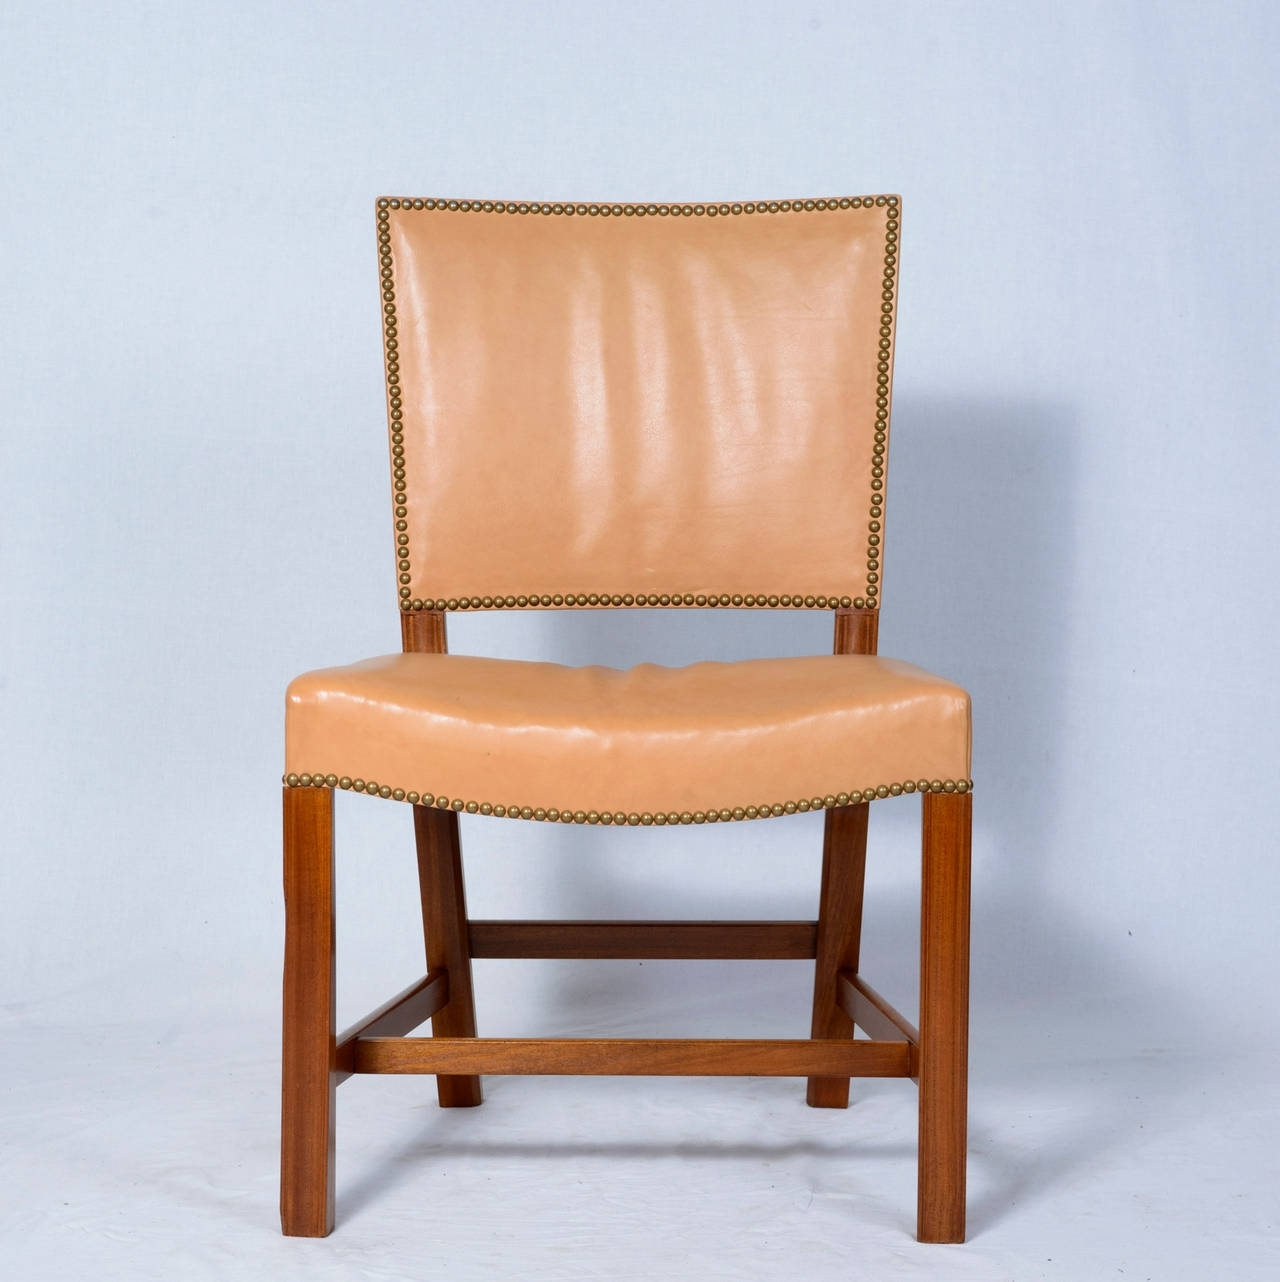 Fashionable Kaare Klint Side Chair For Sale At 1stdibs With Regard To Dodger Side Chairs (View 7 of 20)